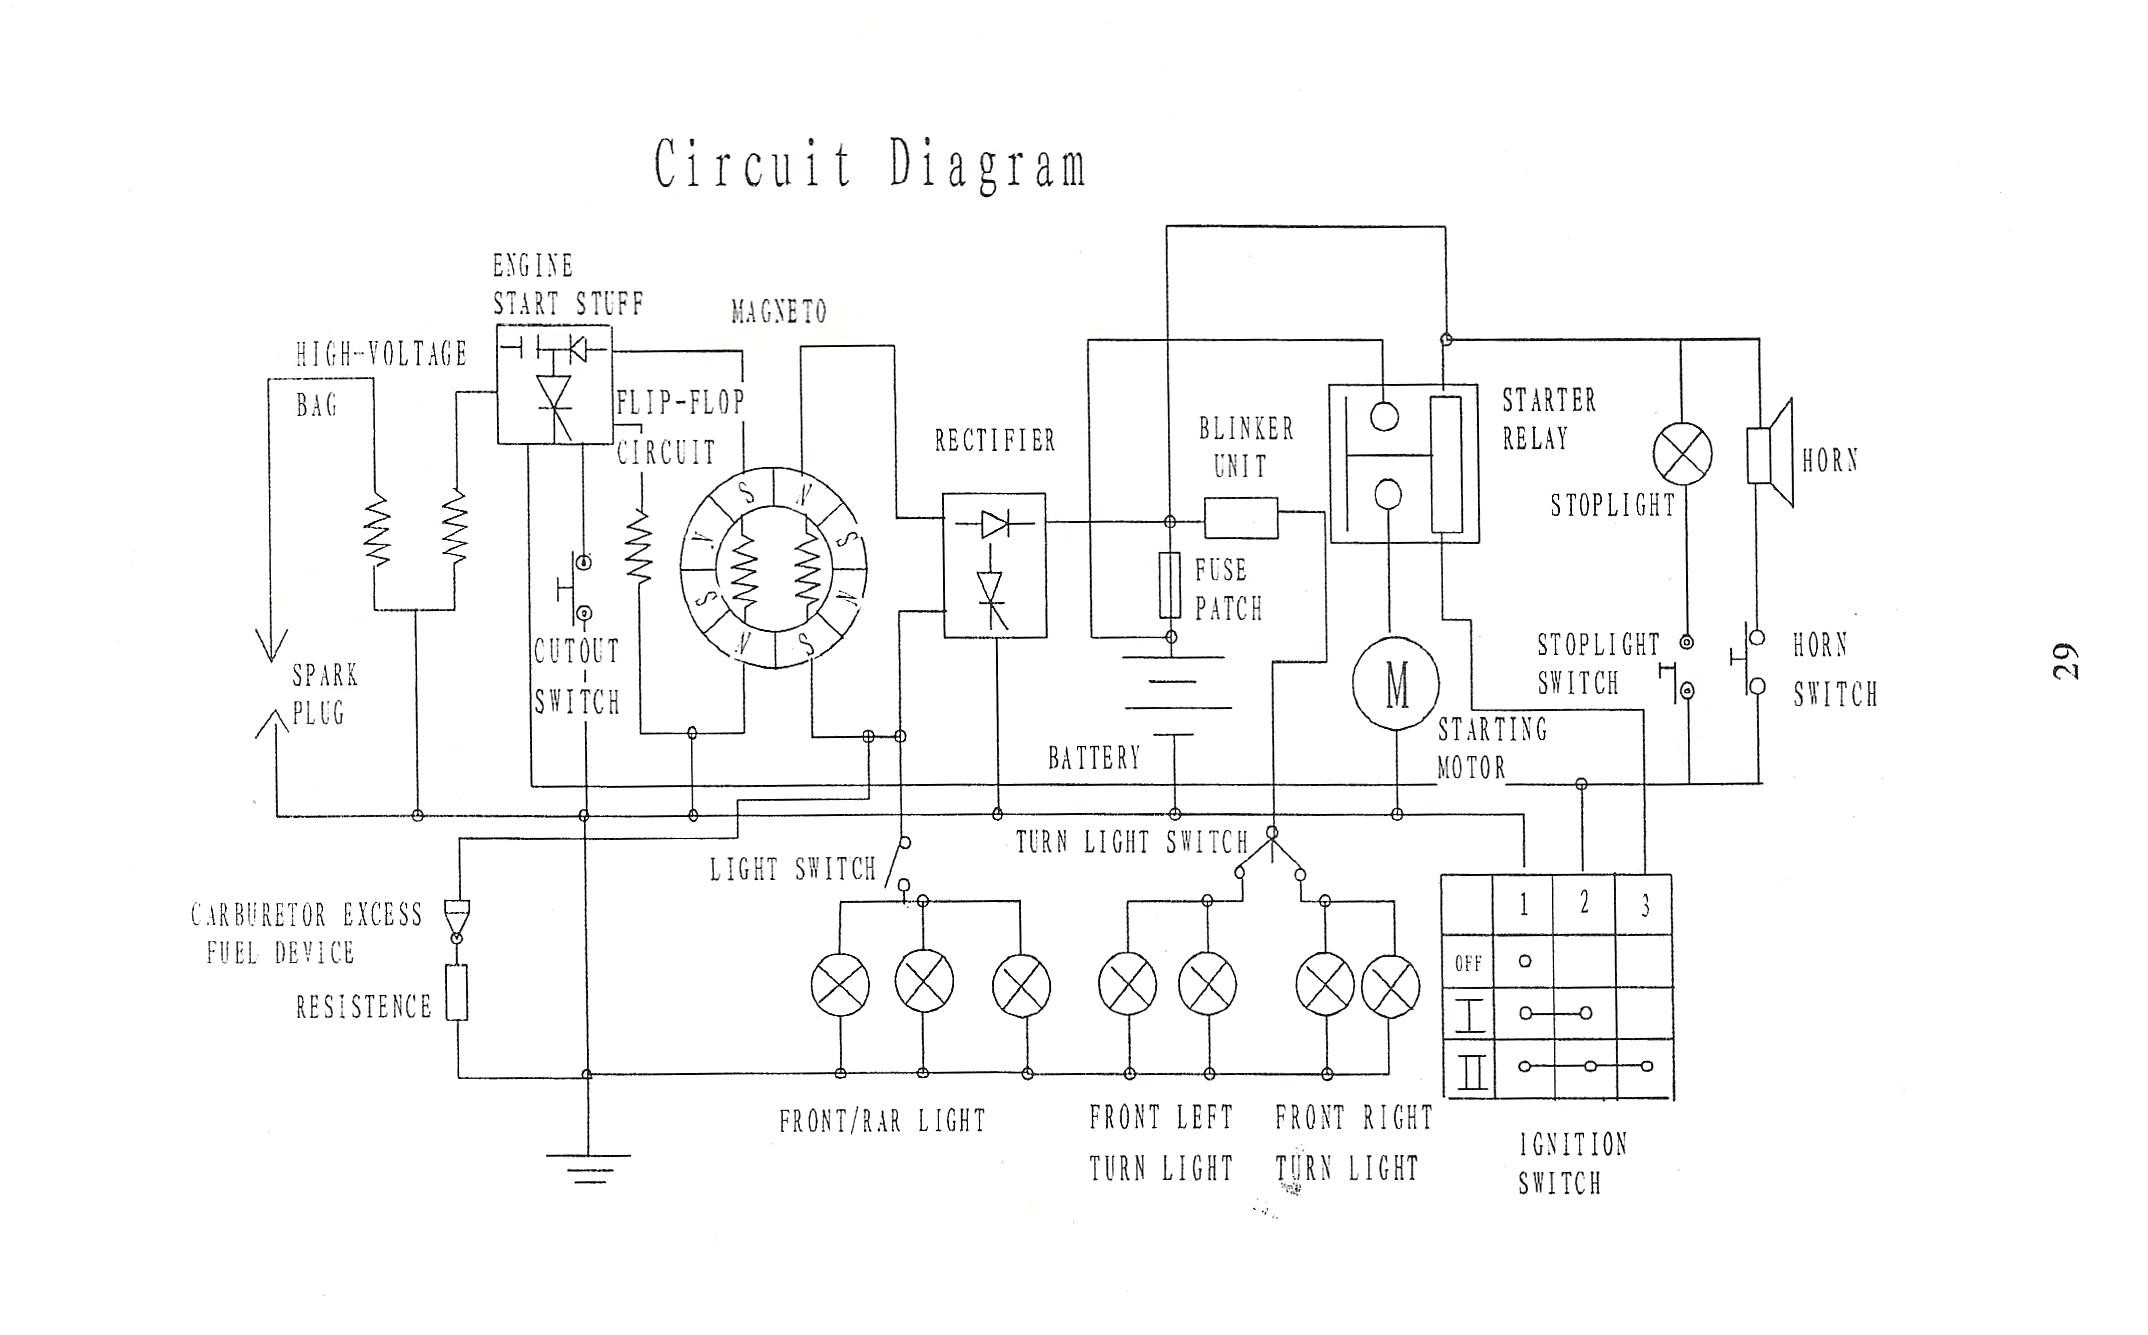 Go Cart Wiring Schematics howhit 150cc wiring diagram gy6 ... Kandi Wiring Diagram on series and parallel circuits diagrams, pinout diagrams, internet of things diagrams, gmc fuse box diagrams, battery diagrams, switch diagrams, honda motorcycle repair diagrams, transformer diagrams, friendship bracelet diagrams, hvac diagrams, lighting diagrams, motor diagrams, troubleshooting diagrams, smart car diagrams, electronic circuit diagrams, sincgars radio configurations diagrams, led circuit diagrams, electrical diagrams, engine diagrams,